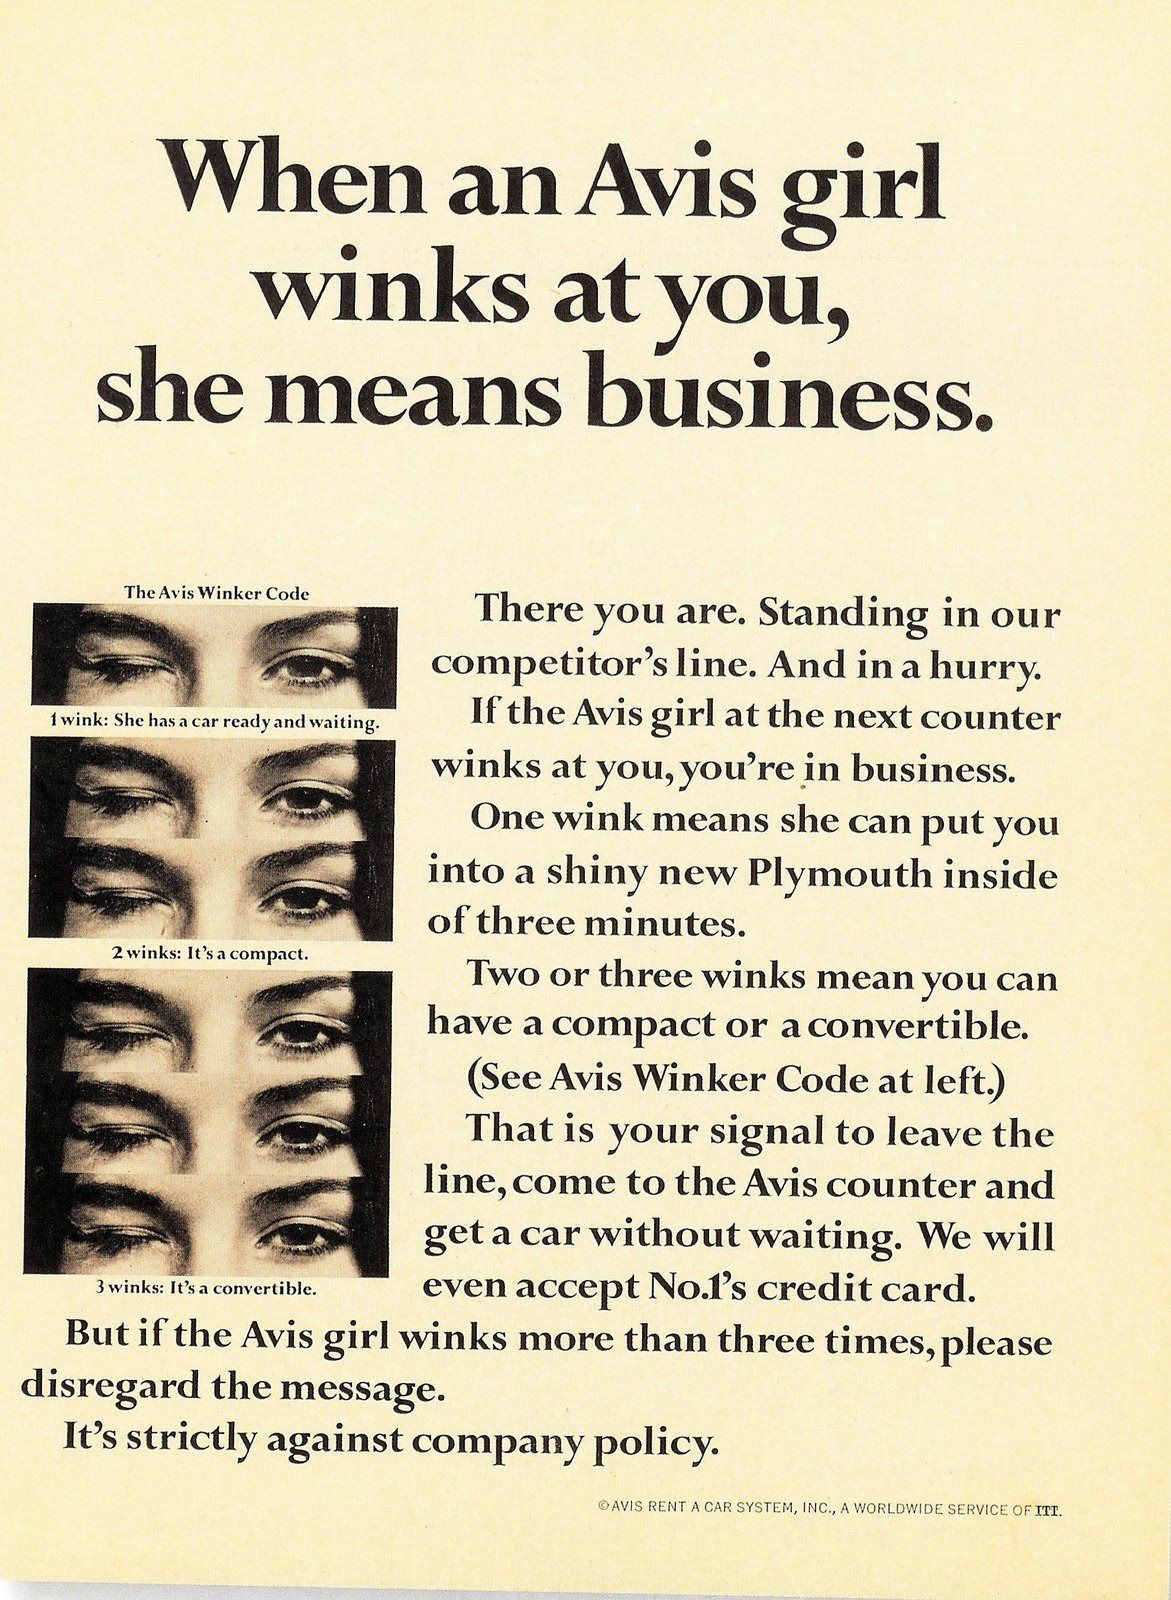 Avis  More Than  Winks Is Against Company Policy  Retro